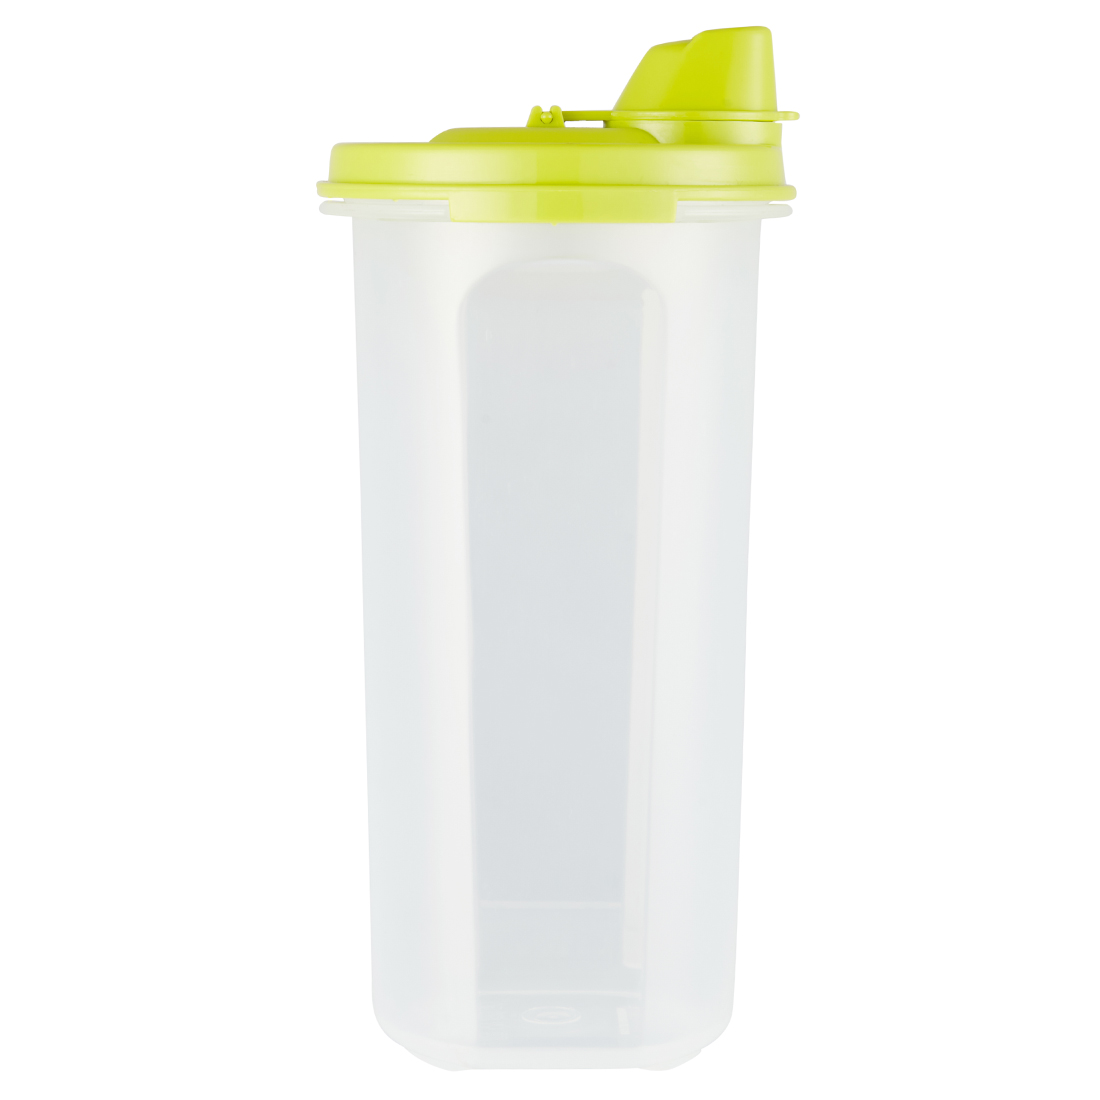 Kitchen Modular Oil Can 650 Ml Grn Plastic Containers in Green Lid And Translucent Bottle Colour by Living Essence